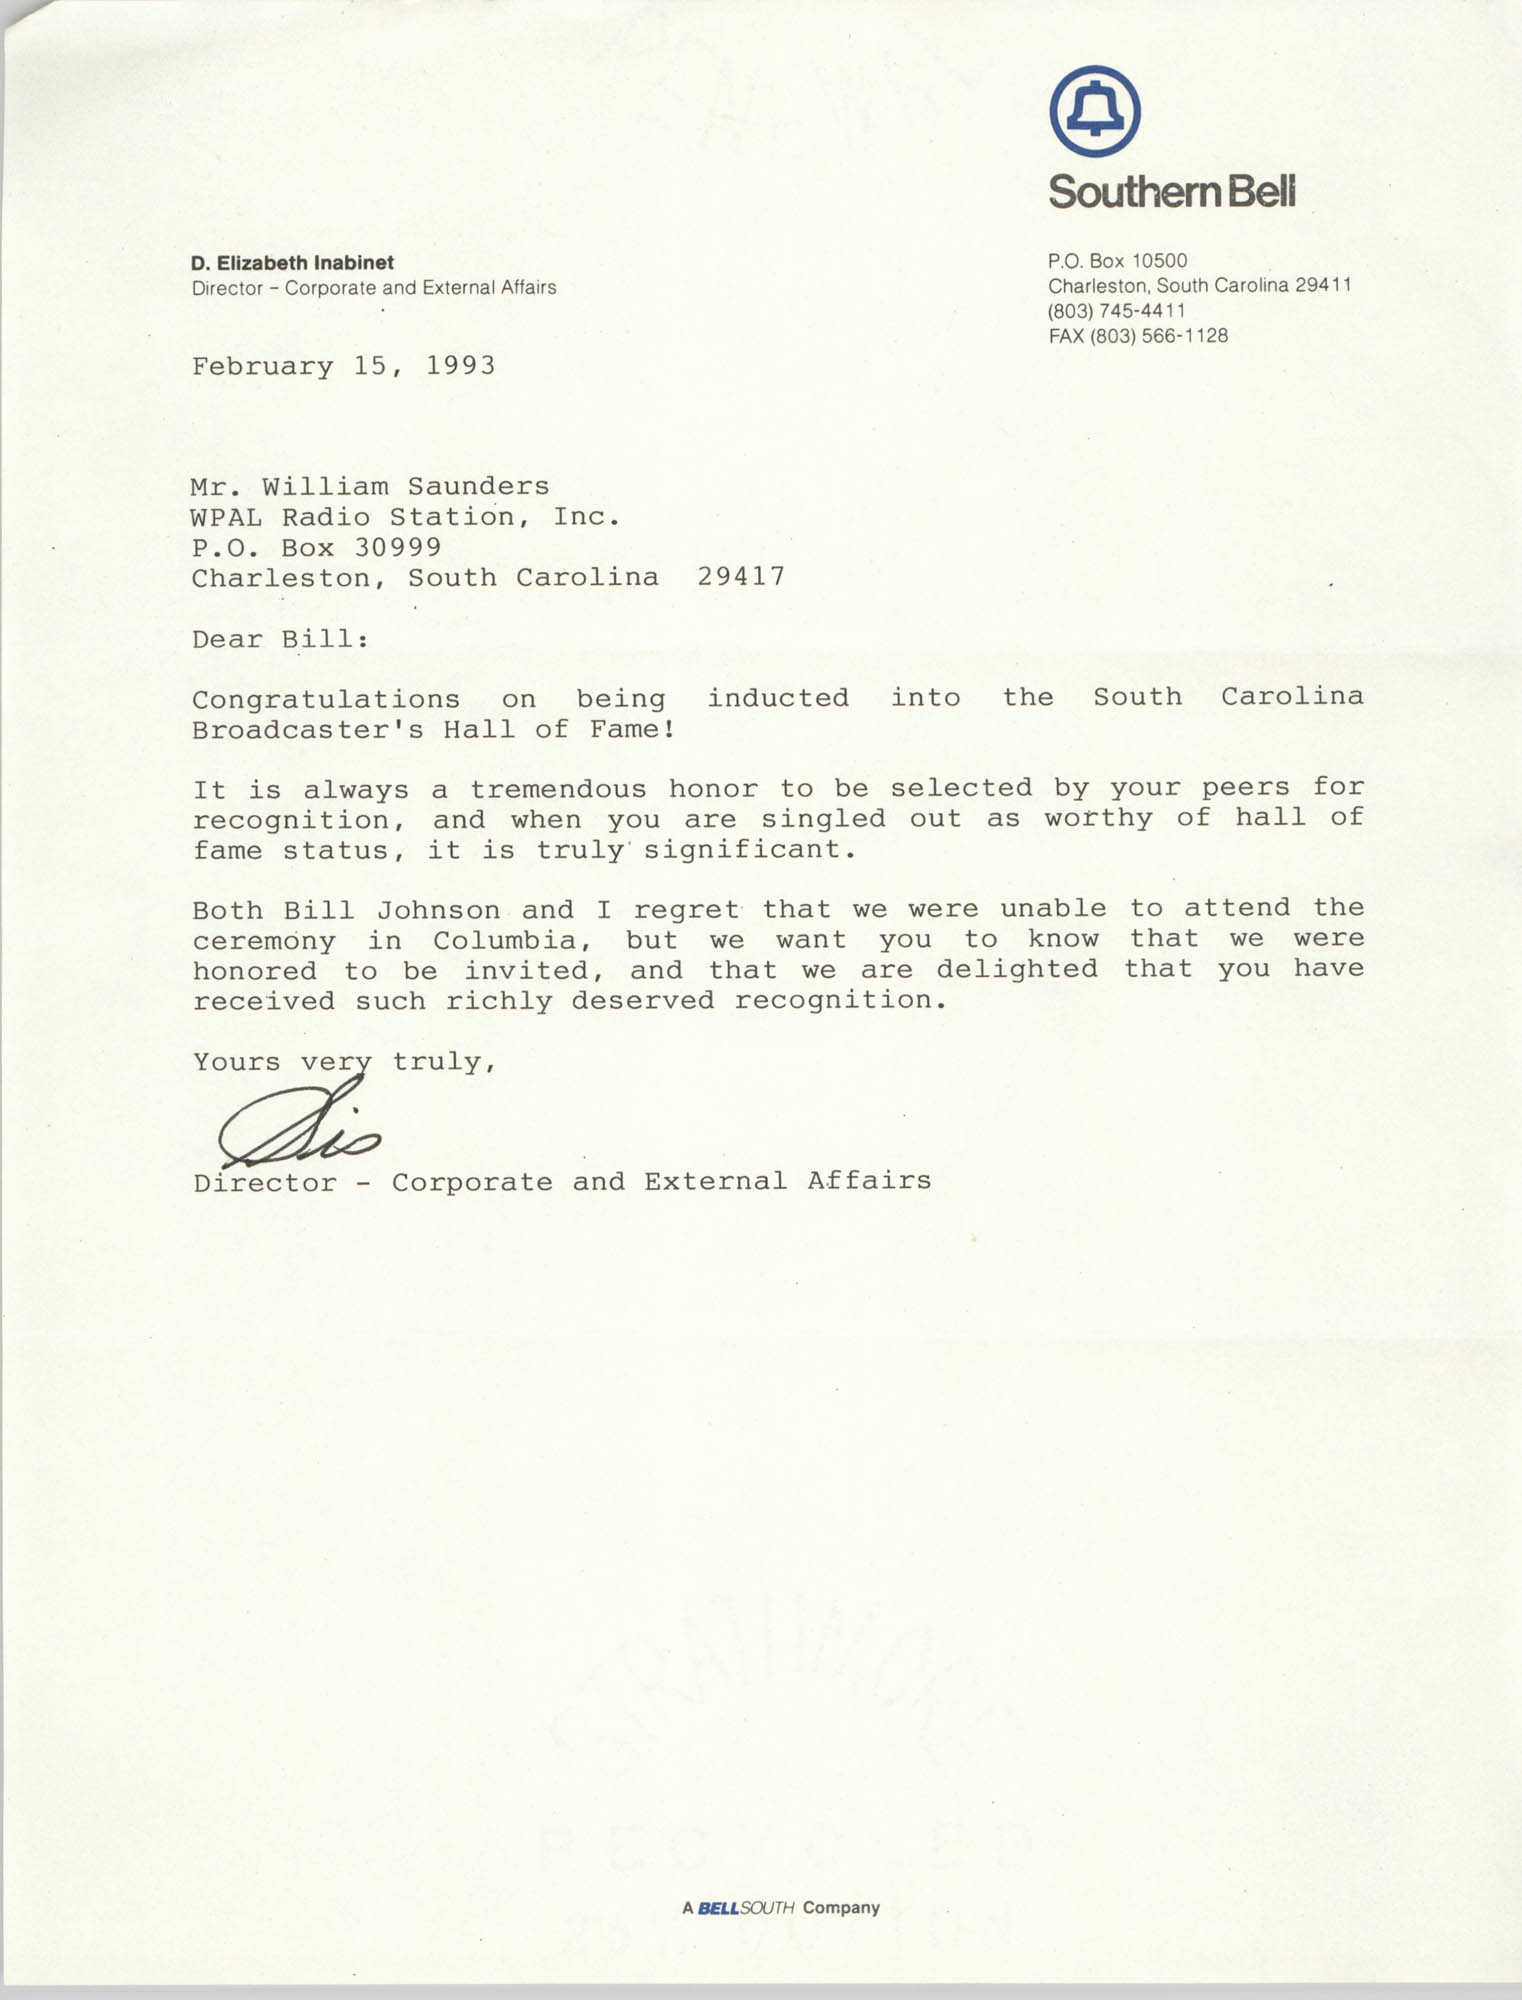 Letter from D. Elizabeth Inabinet to William Saunders, February 15, 1993